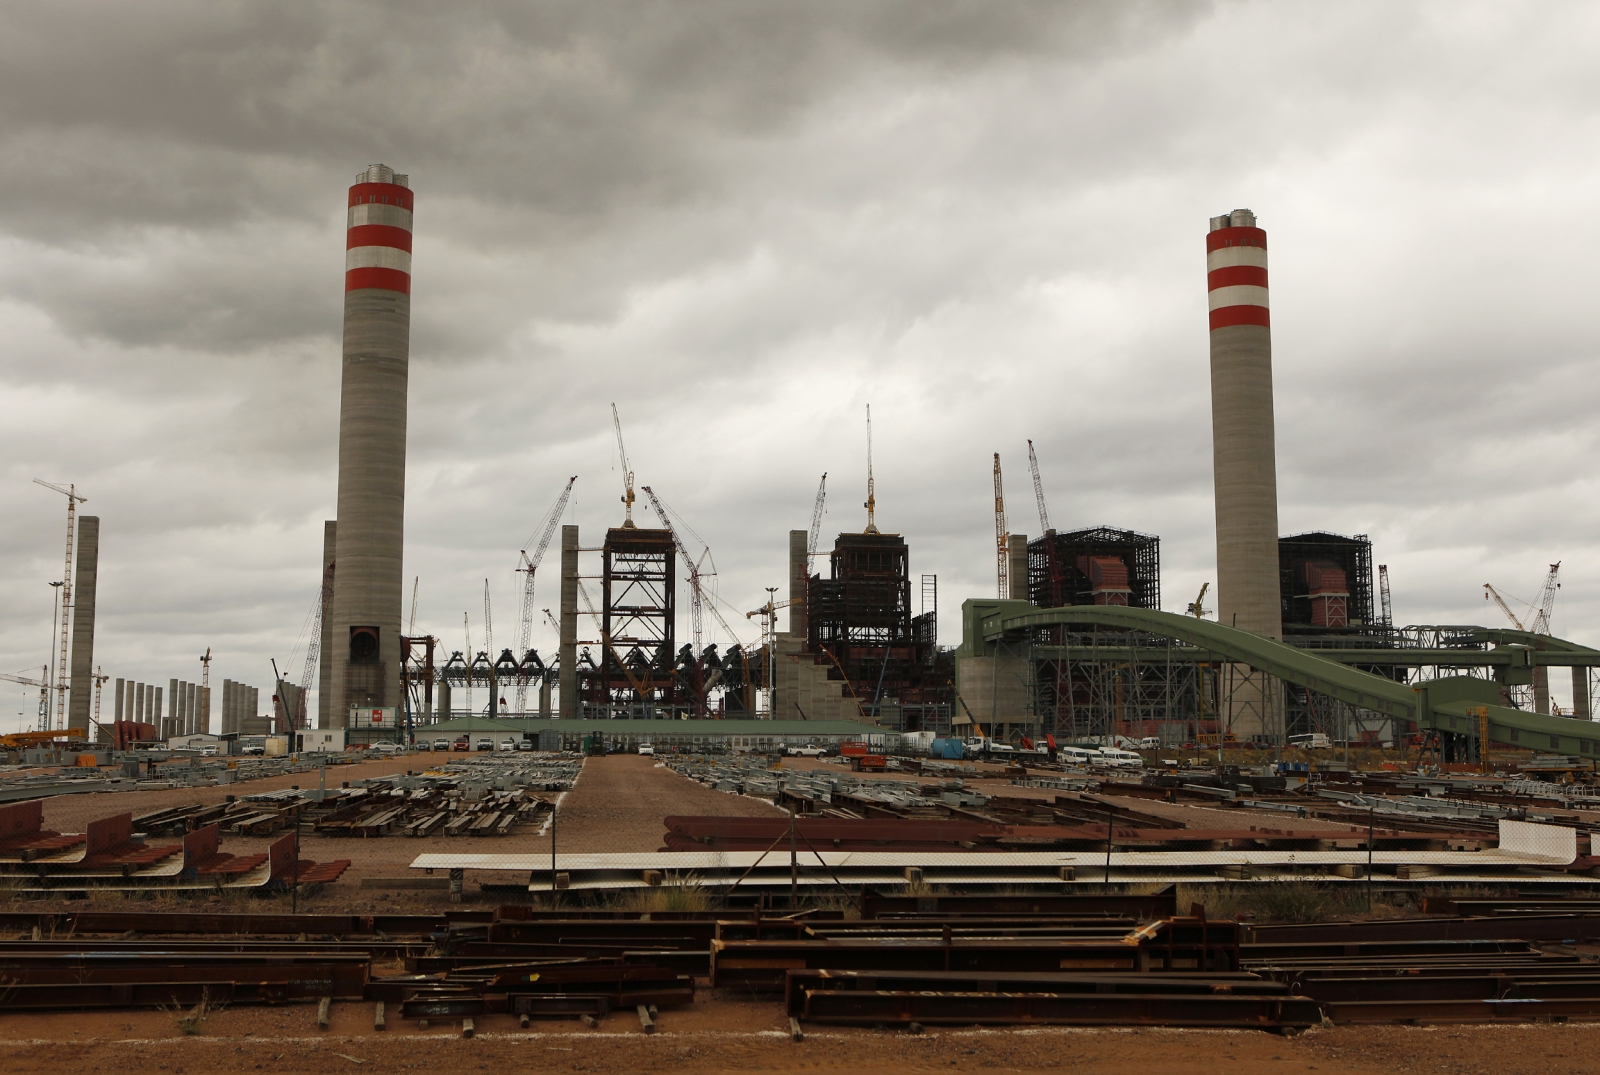 construction site at the Medupi power station in south africa